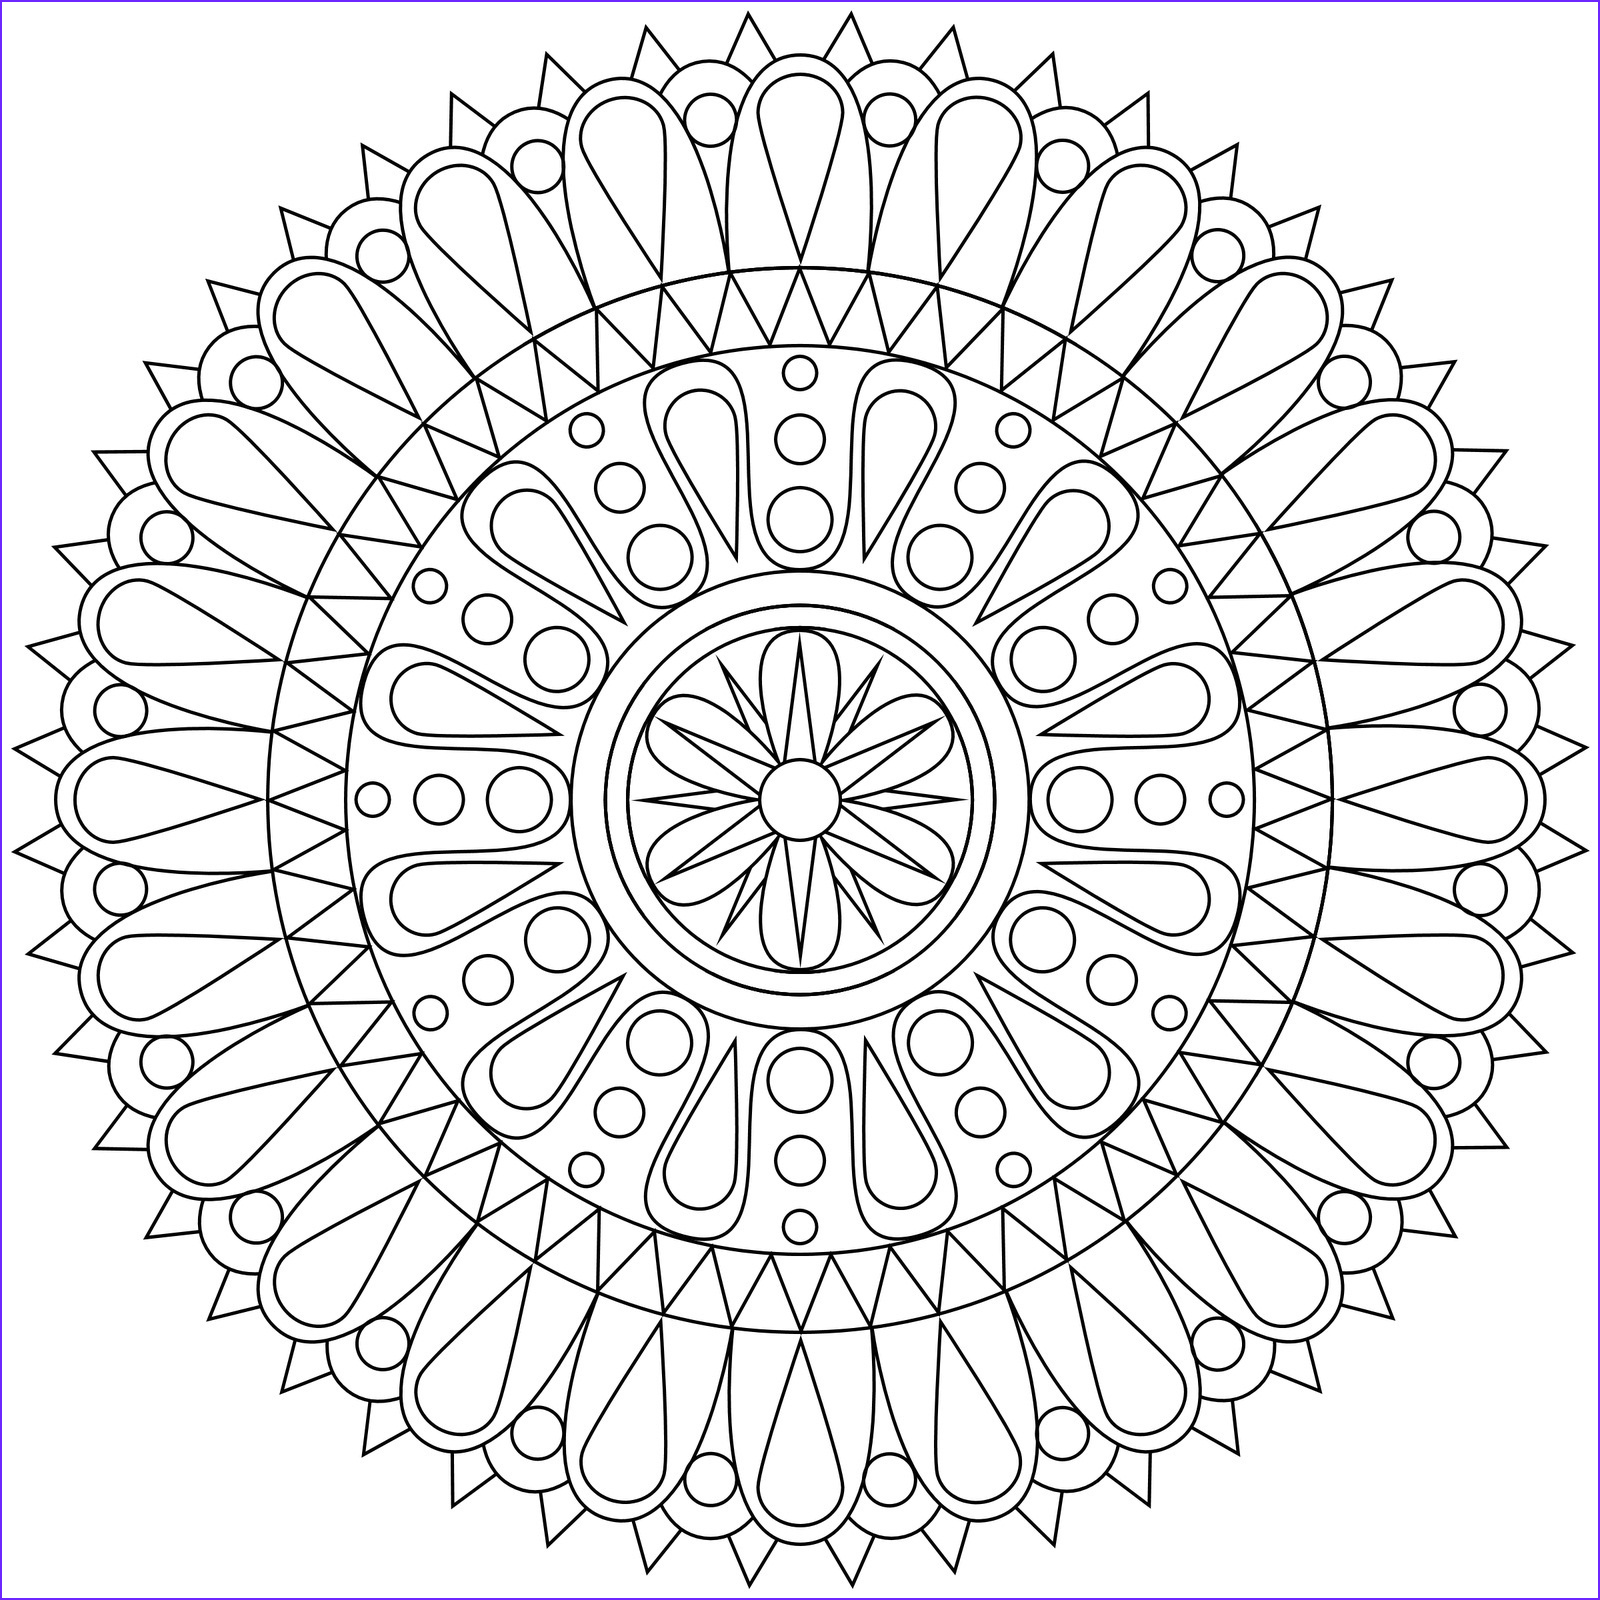 Free Mandala Coloring Pages Elegant Stock Free Printable Geometric Coloring Pages for Kids